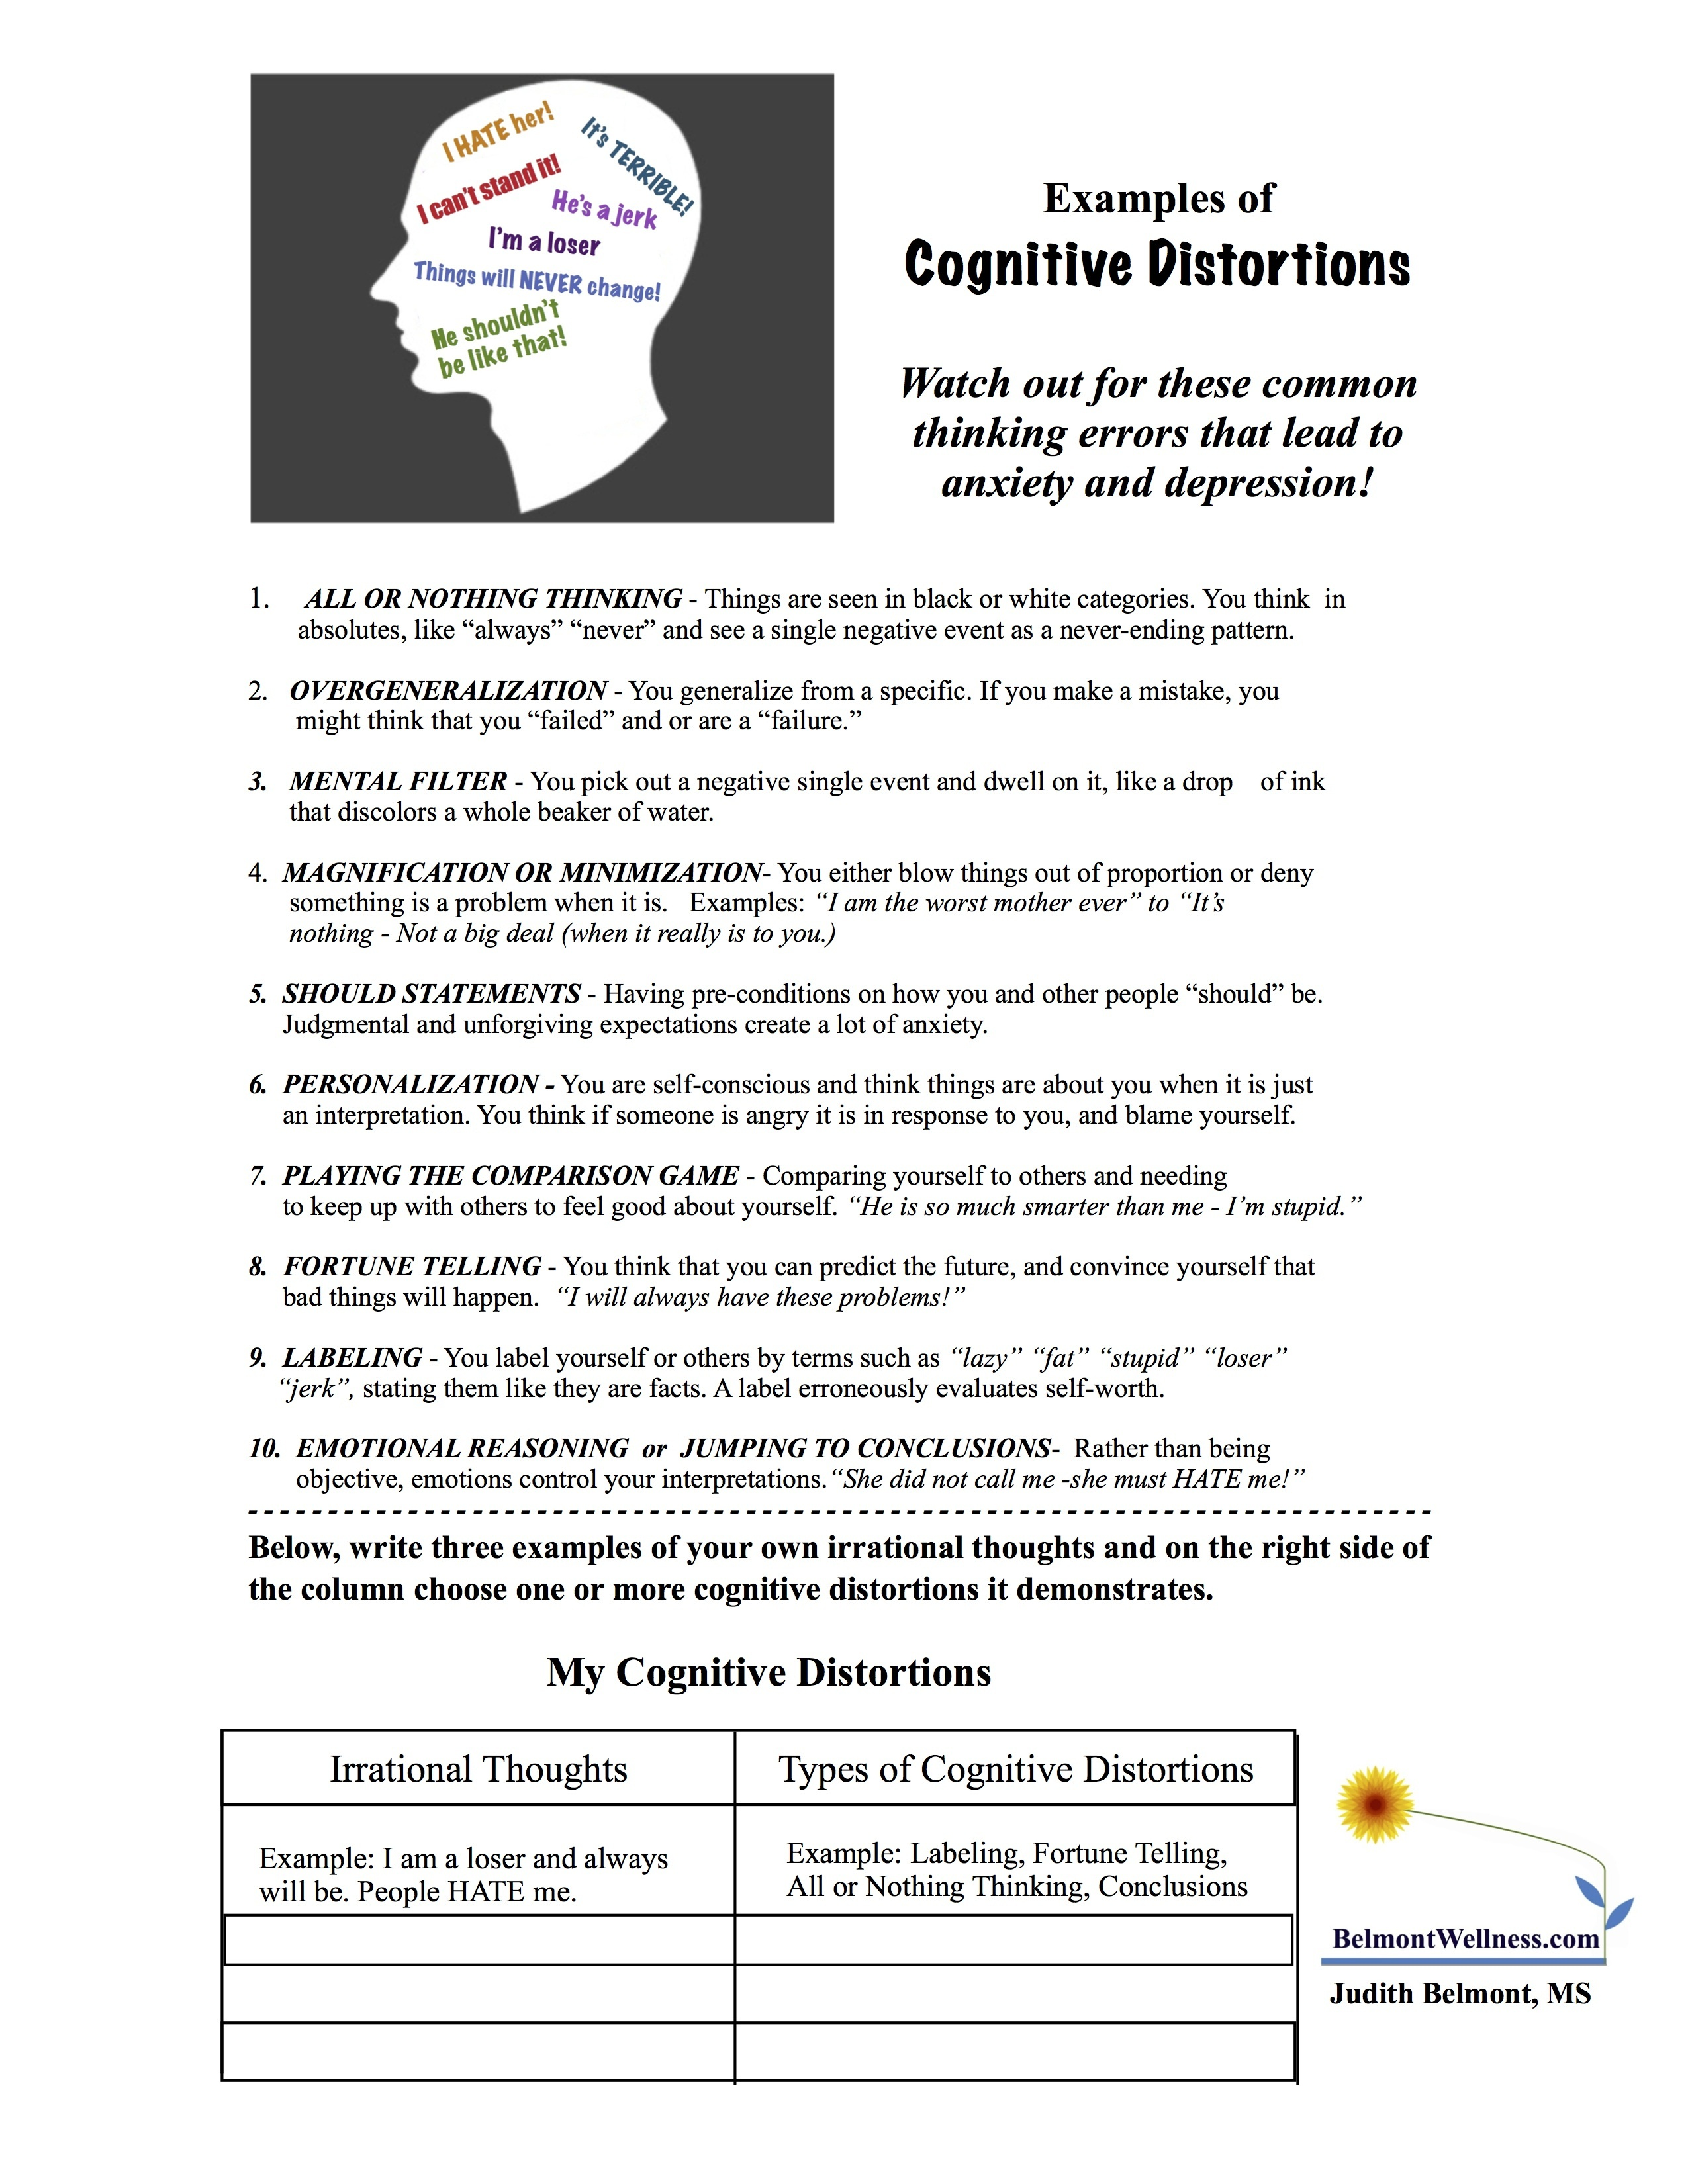 Psychoeducational Handouts, Quizzes And Group Activities | Judy - Free Printable Recovery Games